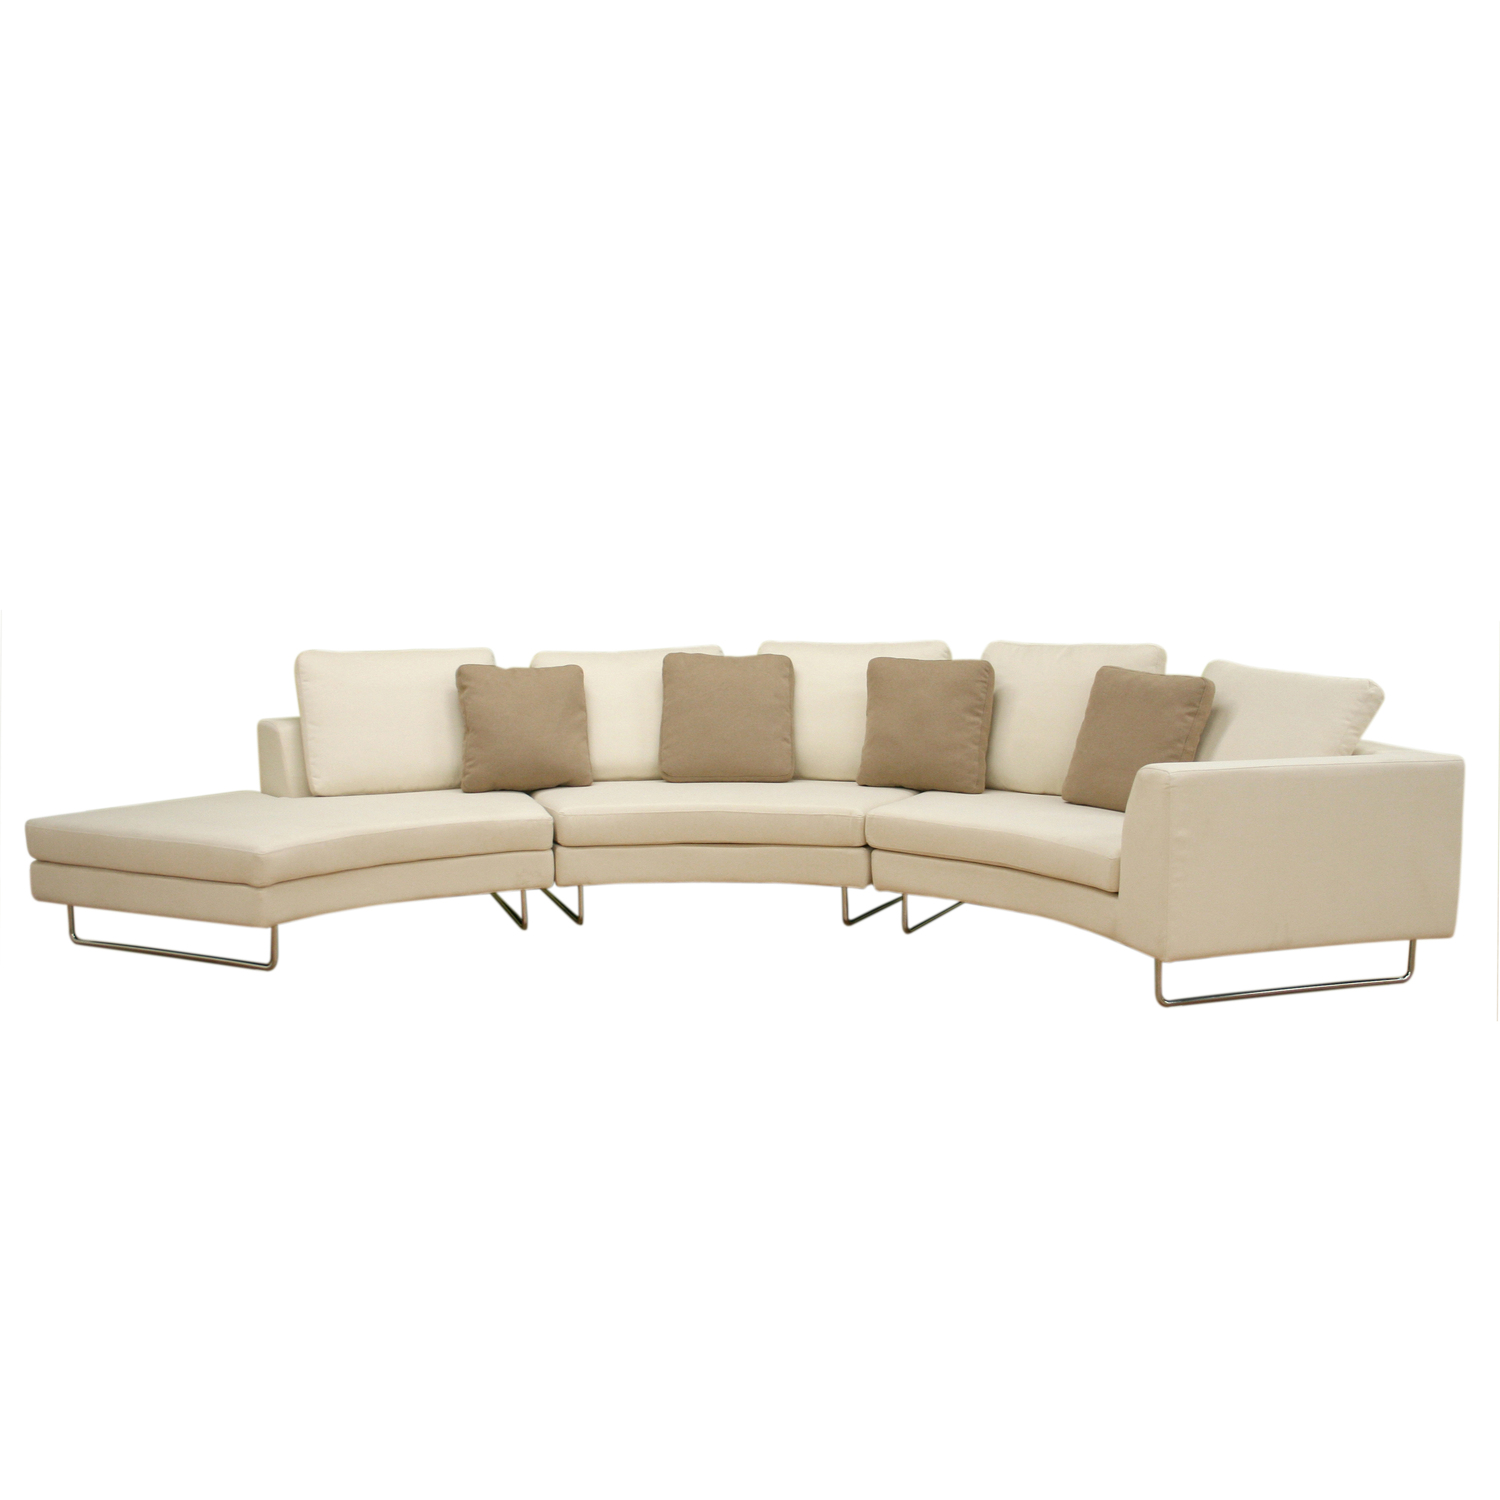 baxton studio lilia curved 3 piece tan fabric modern sectional sofa